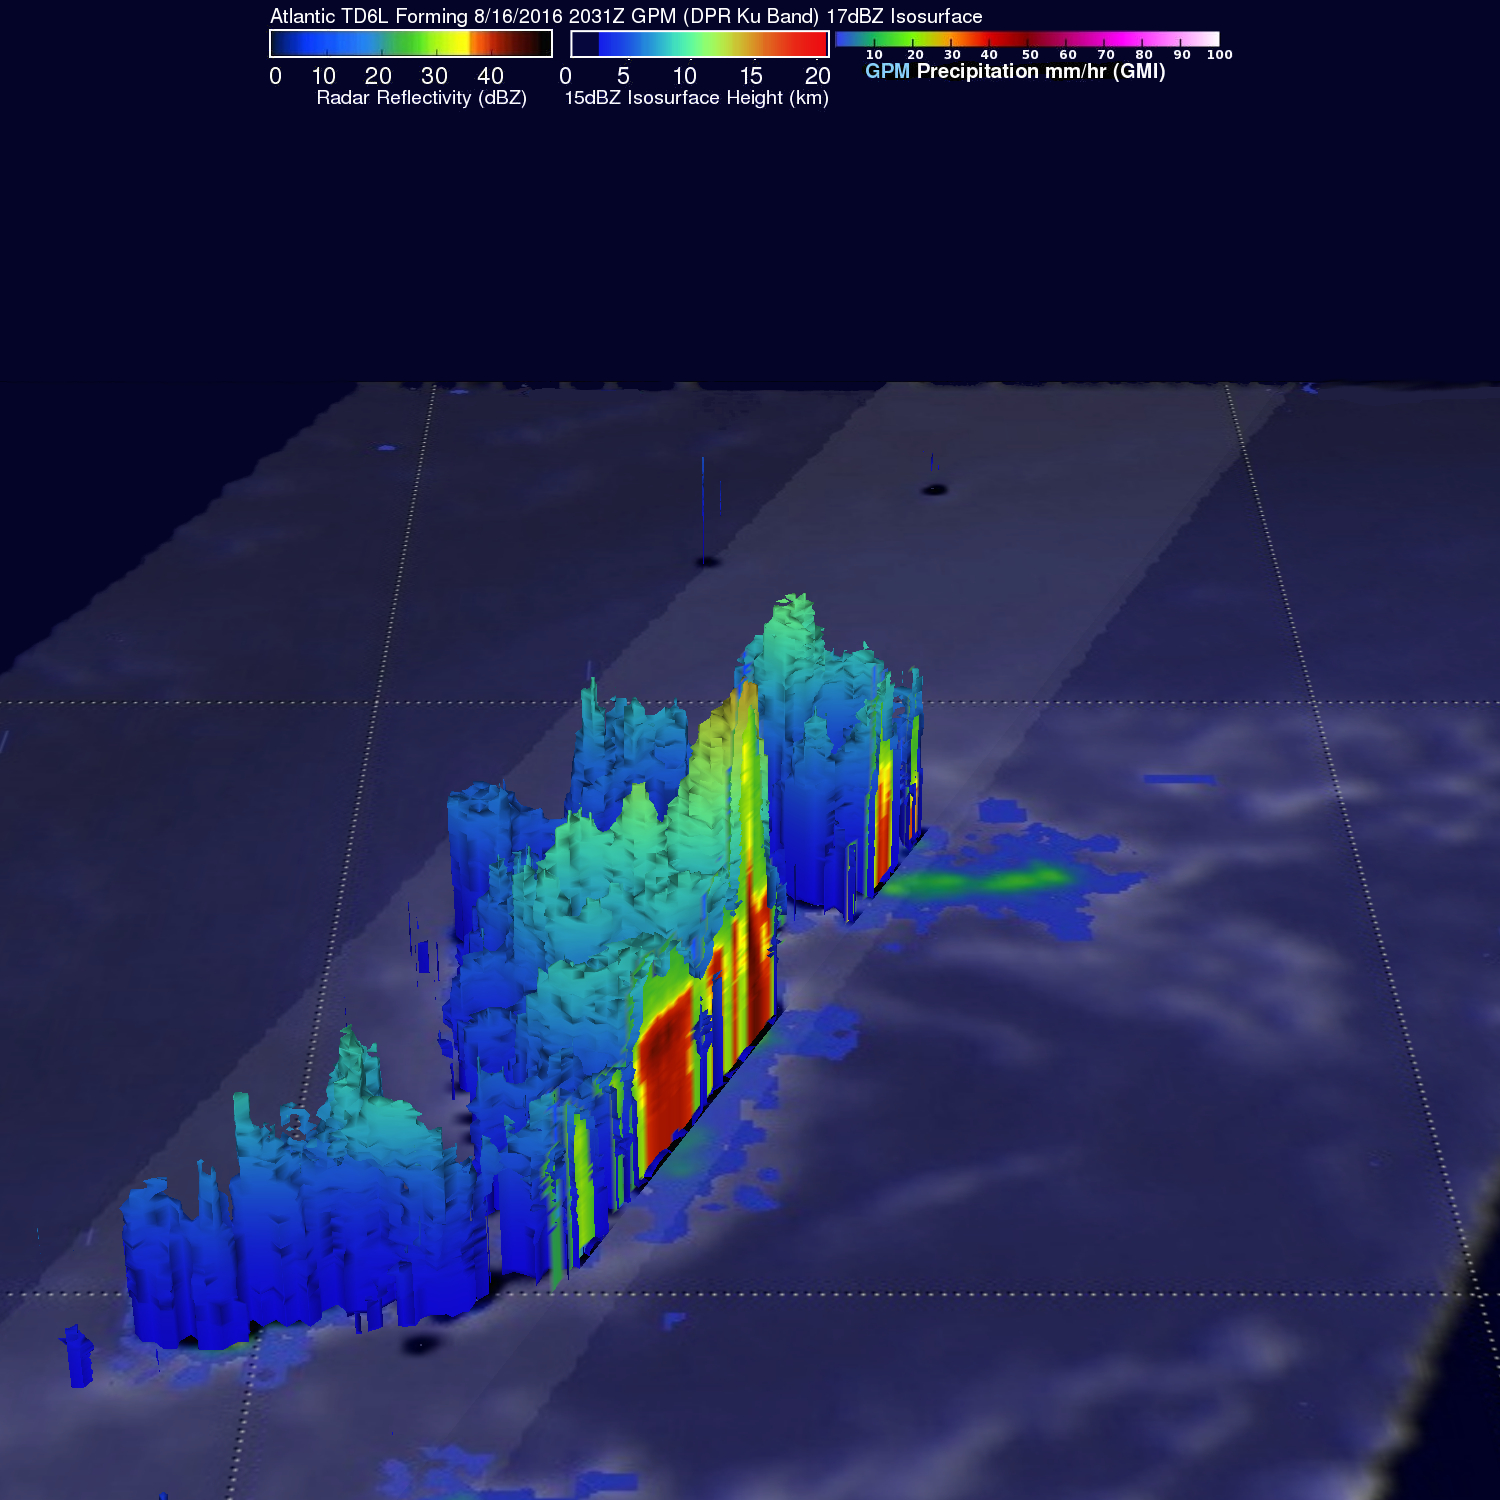 GPM Satellite Sees Forming Atlantic Tropical Depression